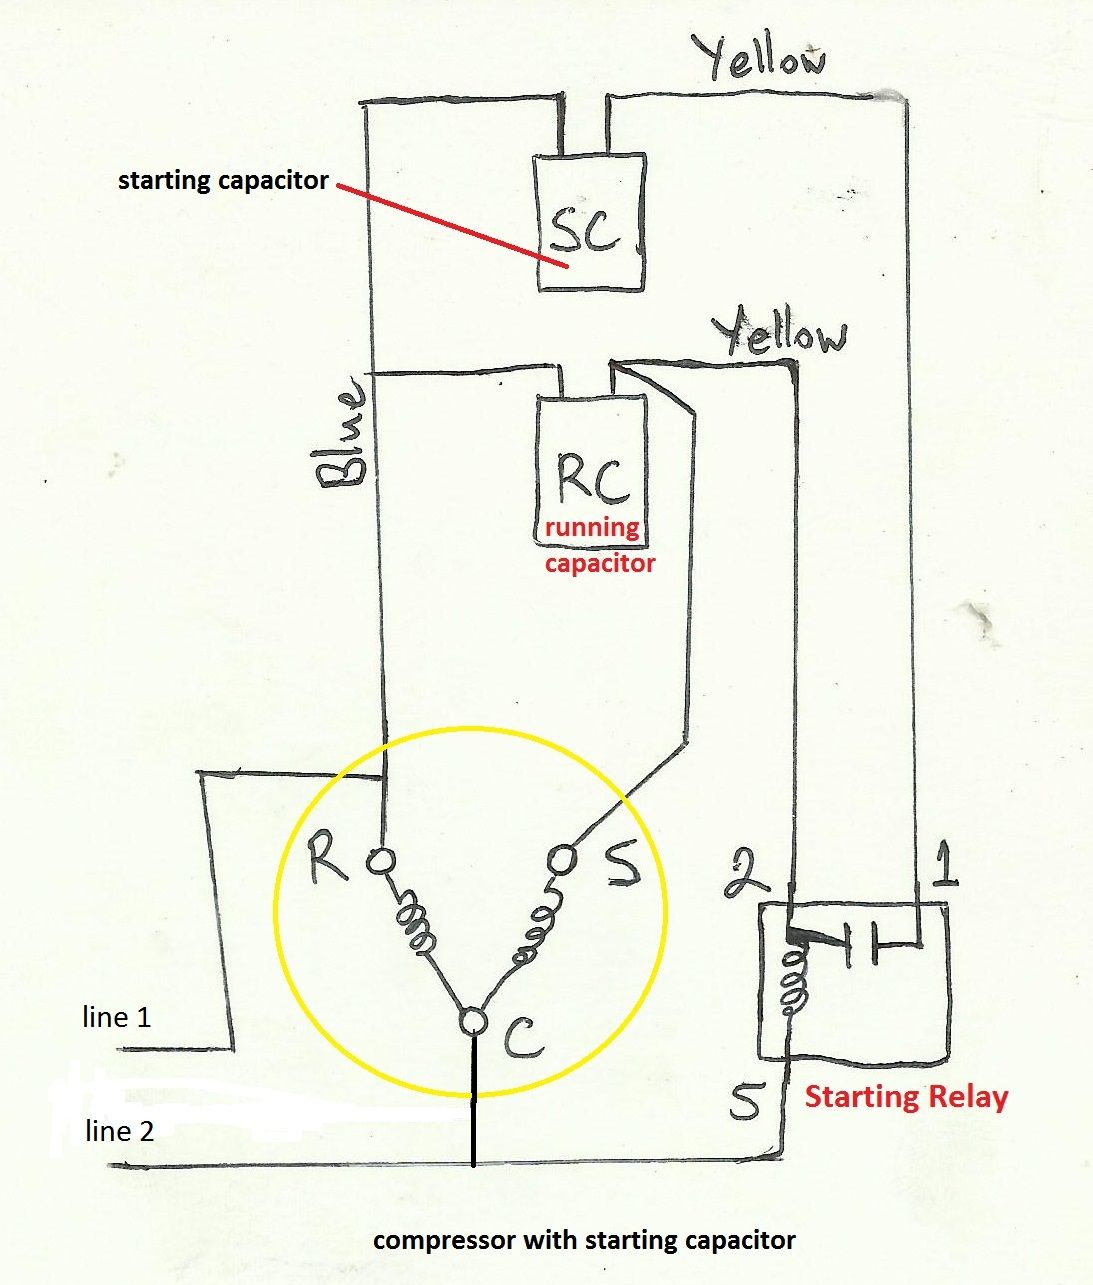 Electric Motor Capacitor Wiring Diagram - Air Pressor Capacitor Wiring Diagram before You Call A Ac Repair Man Visit My Blog for some Tips On How to Save Thousands In Ac Repairs 9p